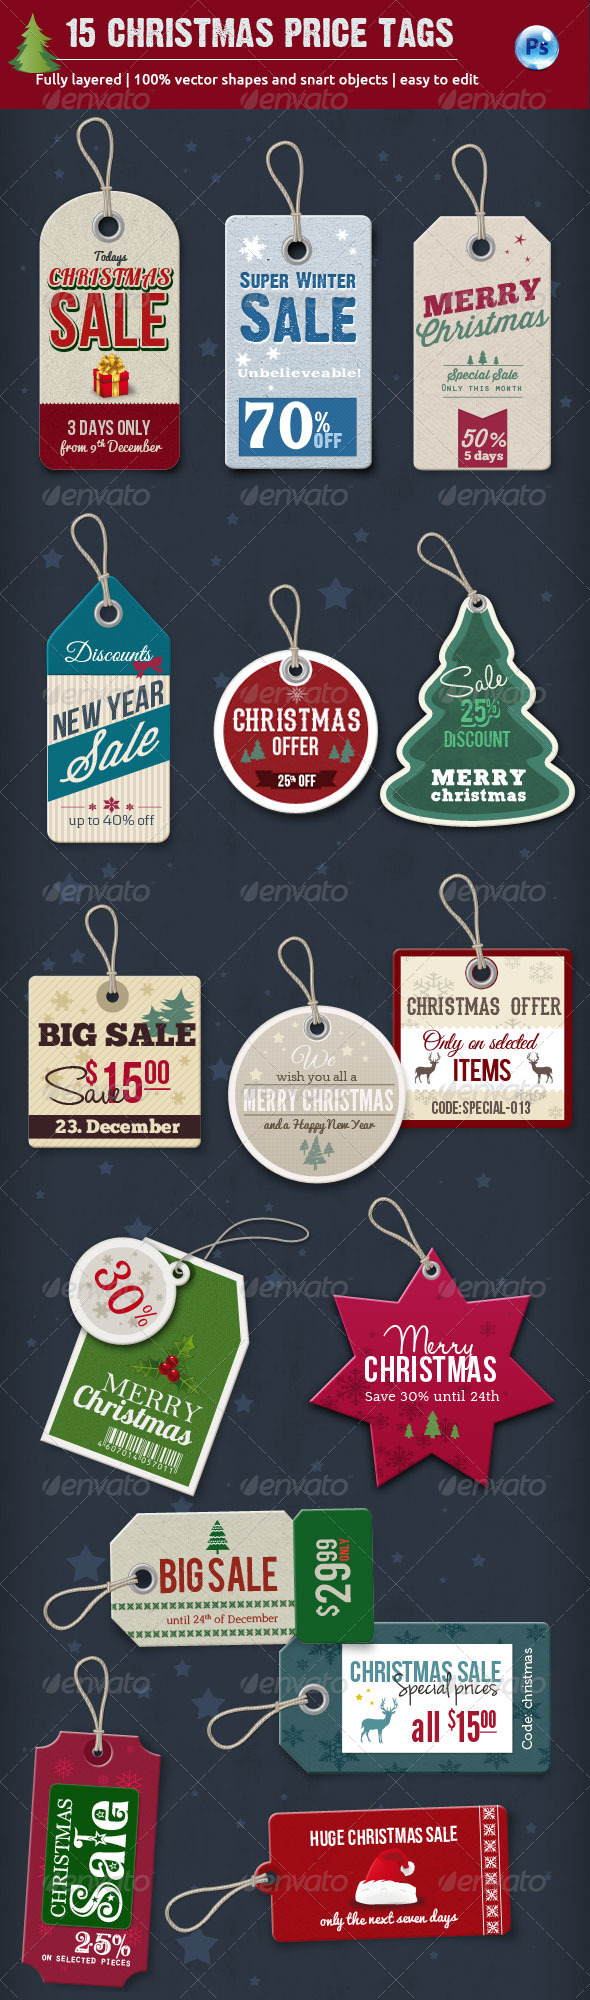 15 Christmas Price Tags - Miscellaneous Web Elements